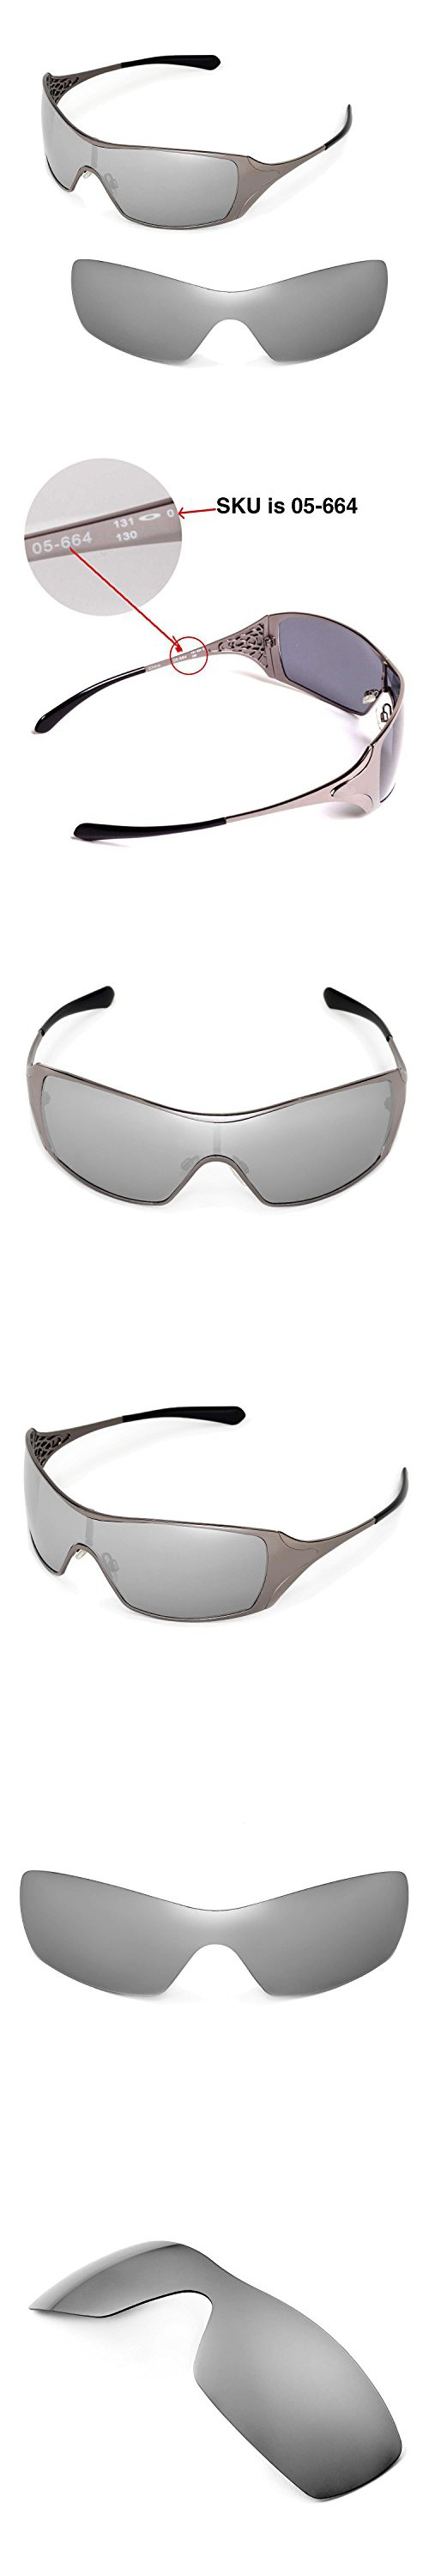 be07164192 Walleva Replacement Lenses for Oakley Dart Sunglasses - Multiple Options  Available (Titanium Mirror Coated -